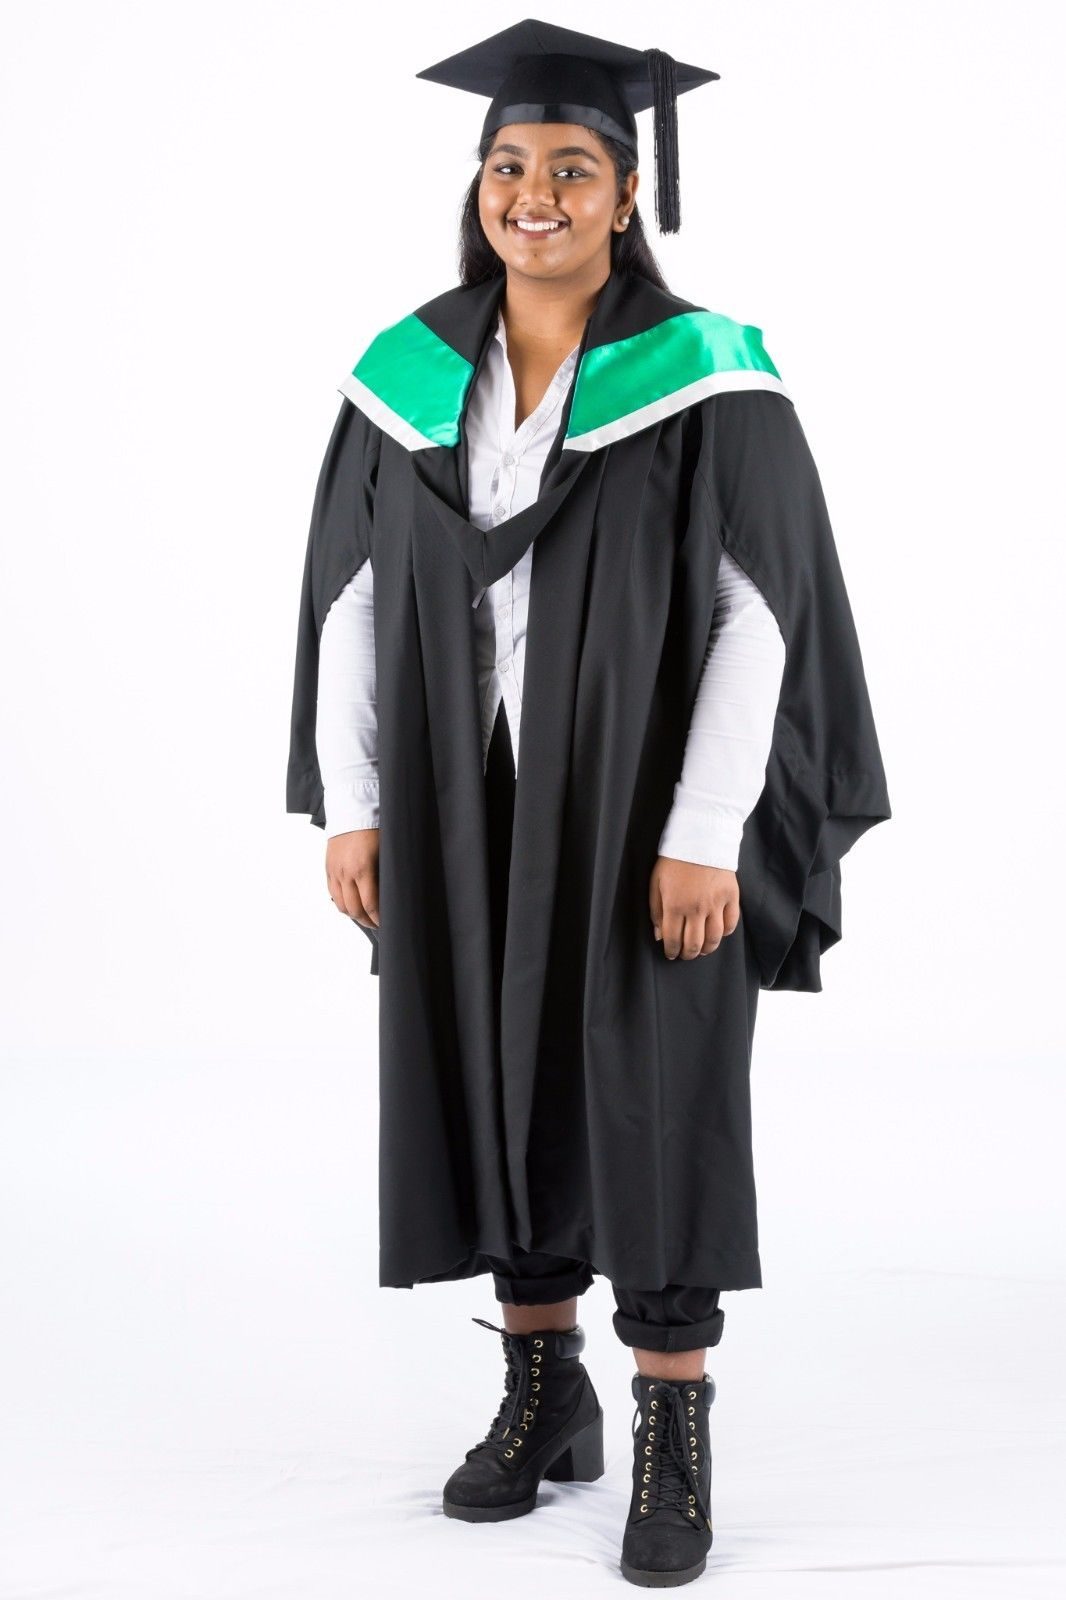 University-Academic-Hood-Graduation-Grad-Dip-Education-GreenPearl-White-border-382202341352